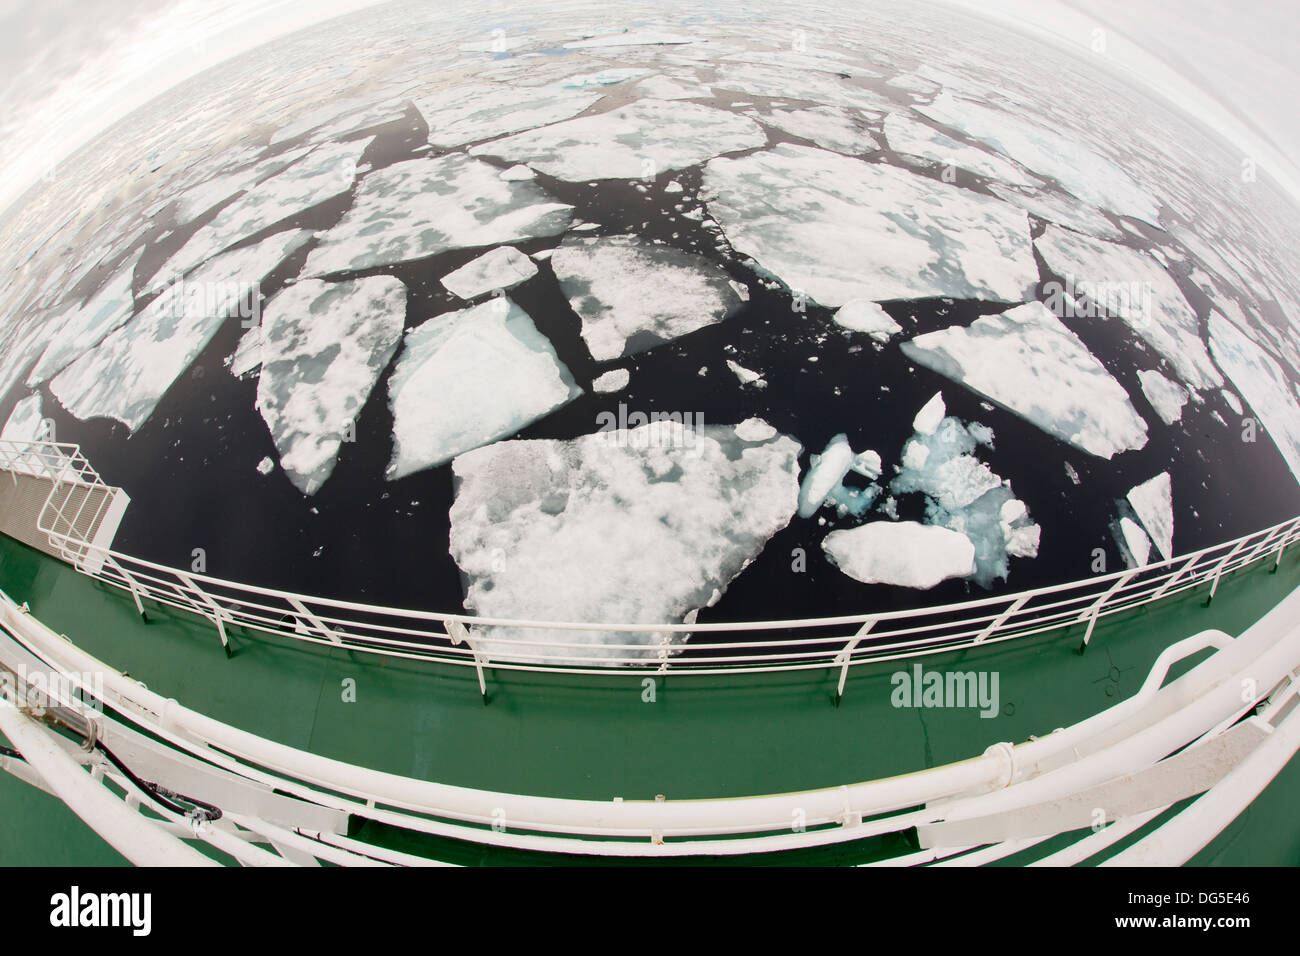 Rotten sea ice at over 80 degrees North off the north coast of Svalbard. Climate change is causing sea ice to retreat rapidly. - Stock Image